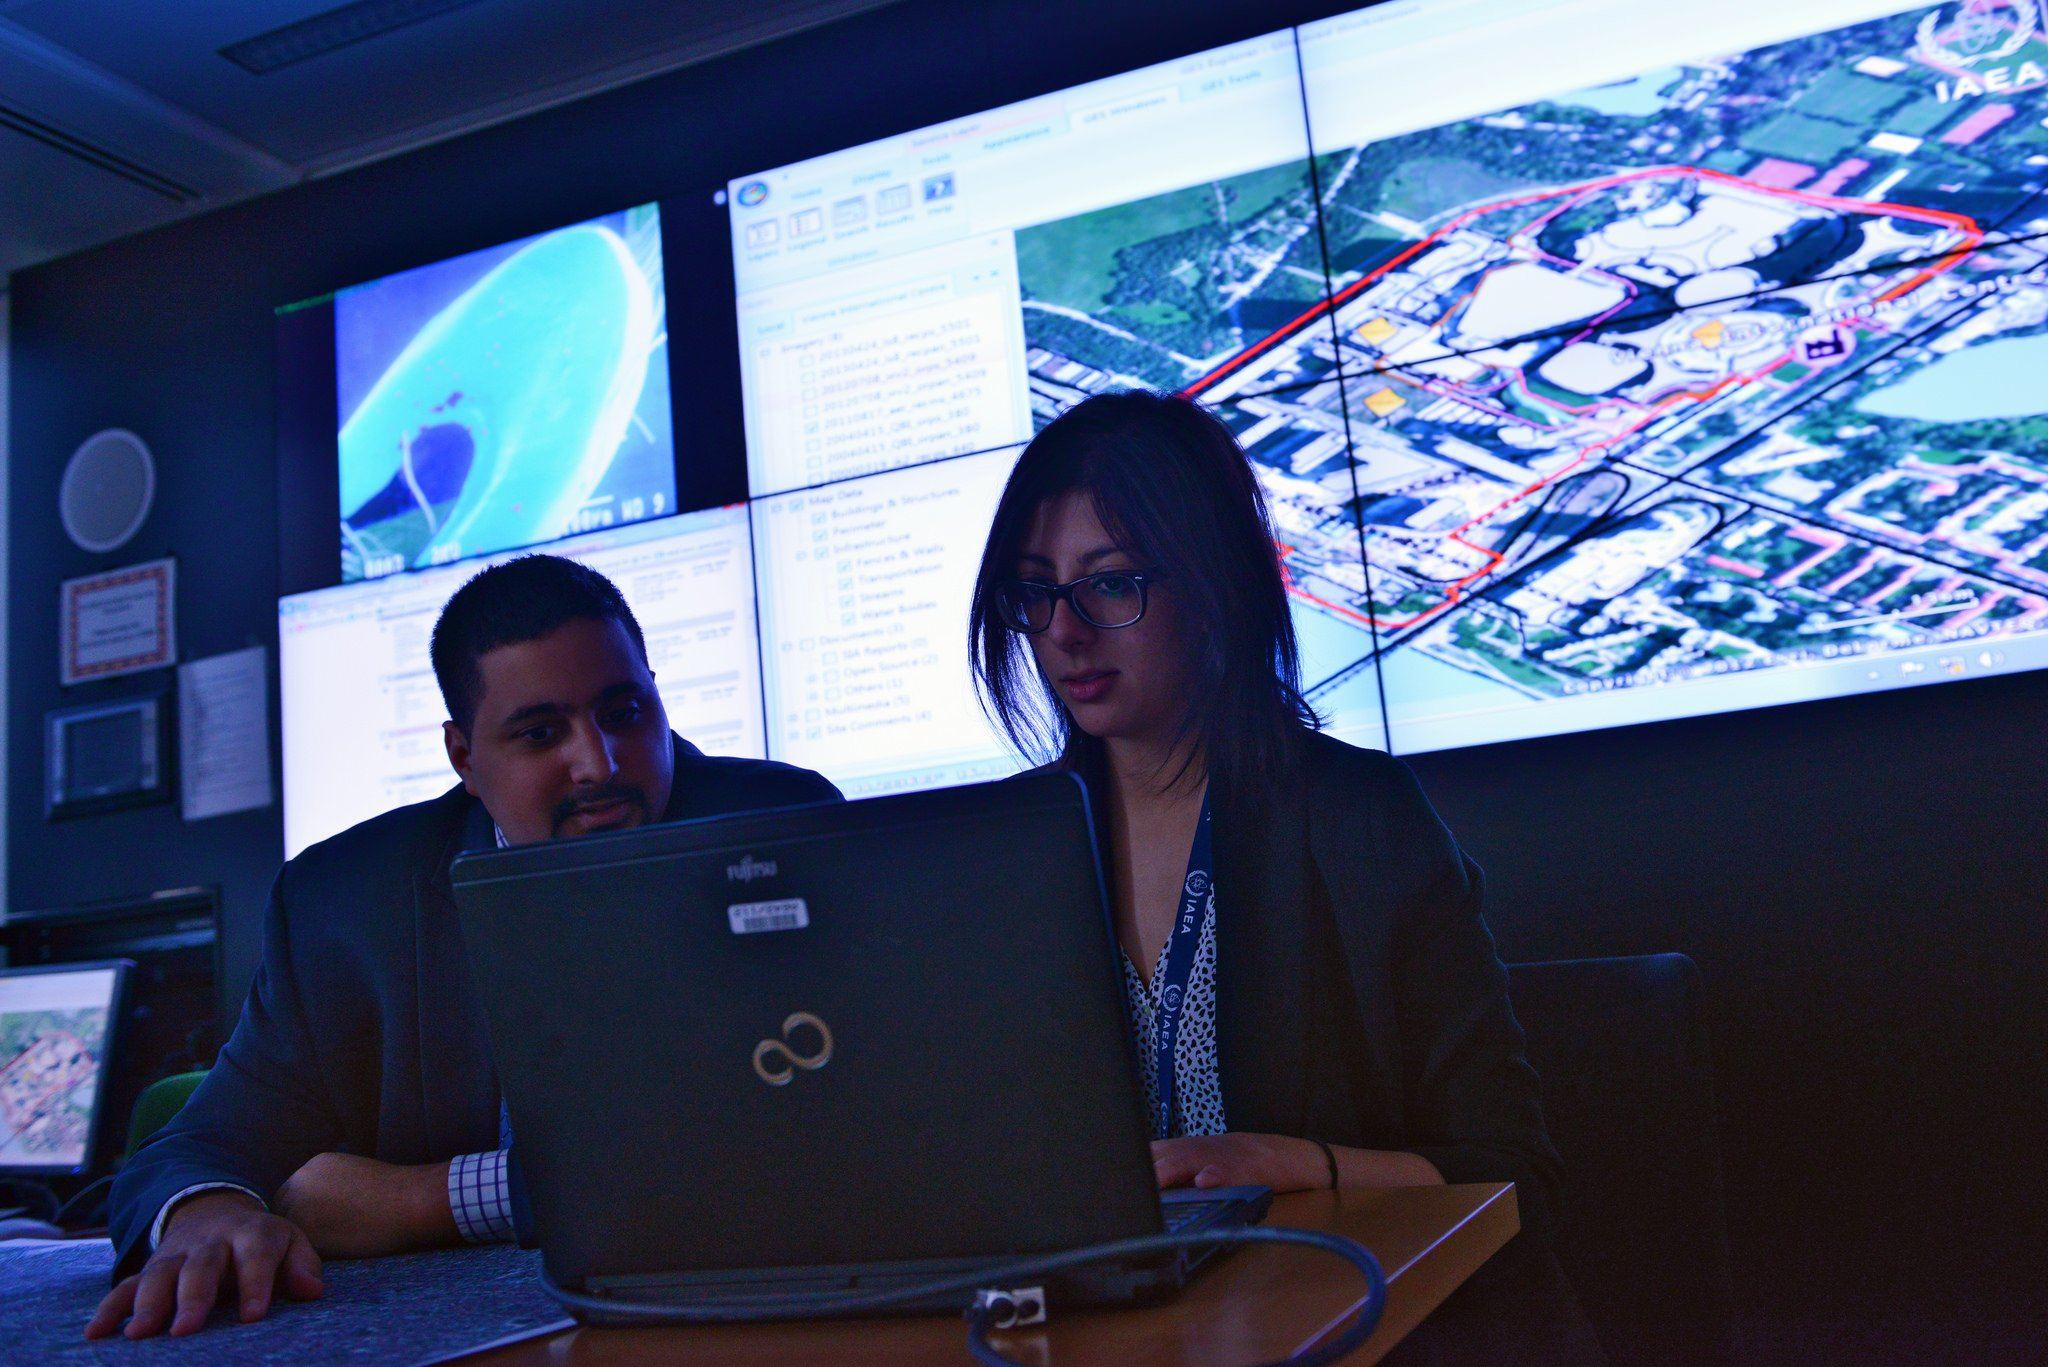 IAEA staffers analyze satellite imagery at the agency's Vienna headquarters on March 19. (Dean Calma/IAEA)